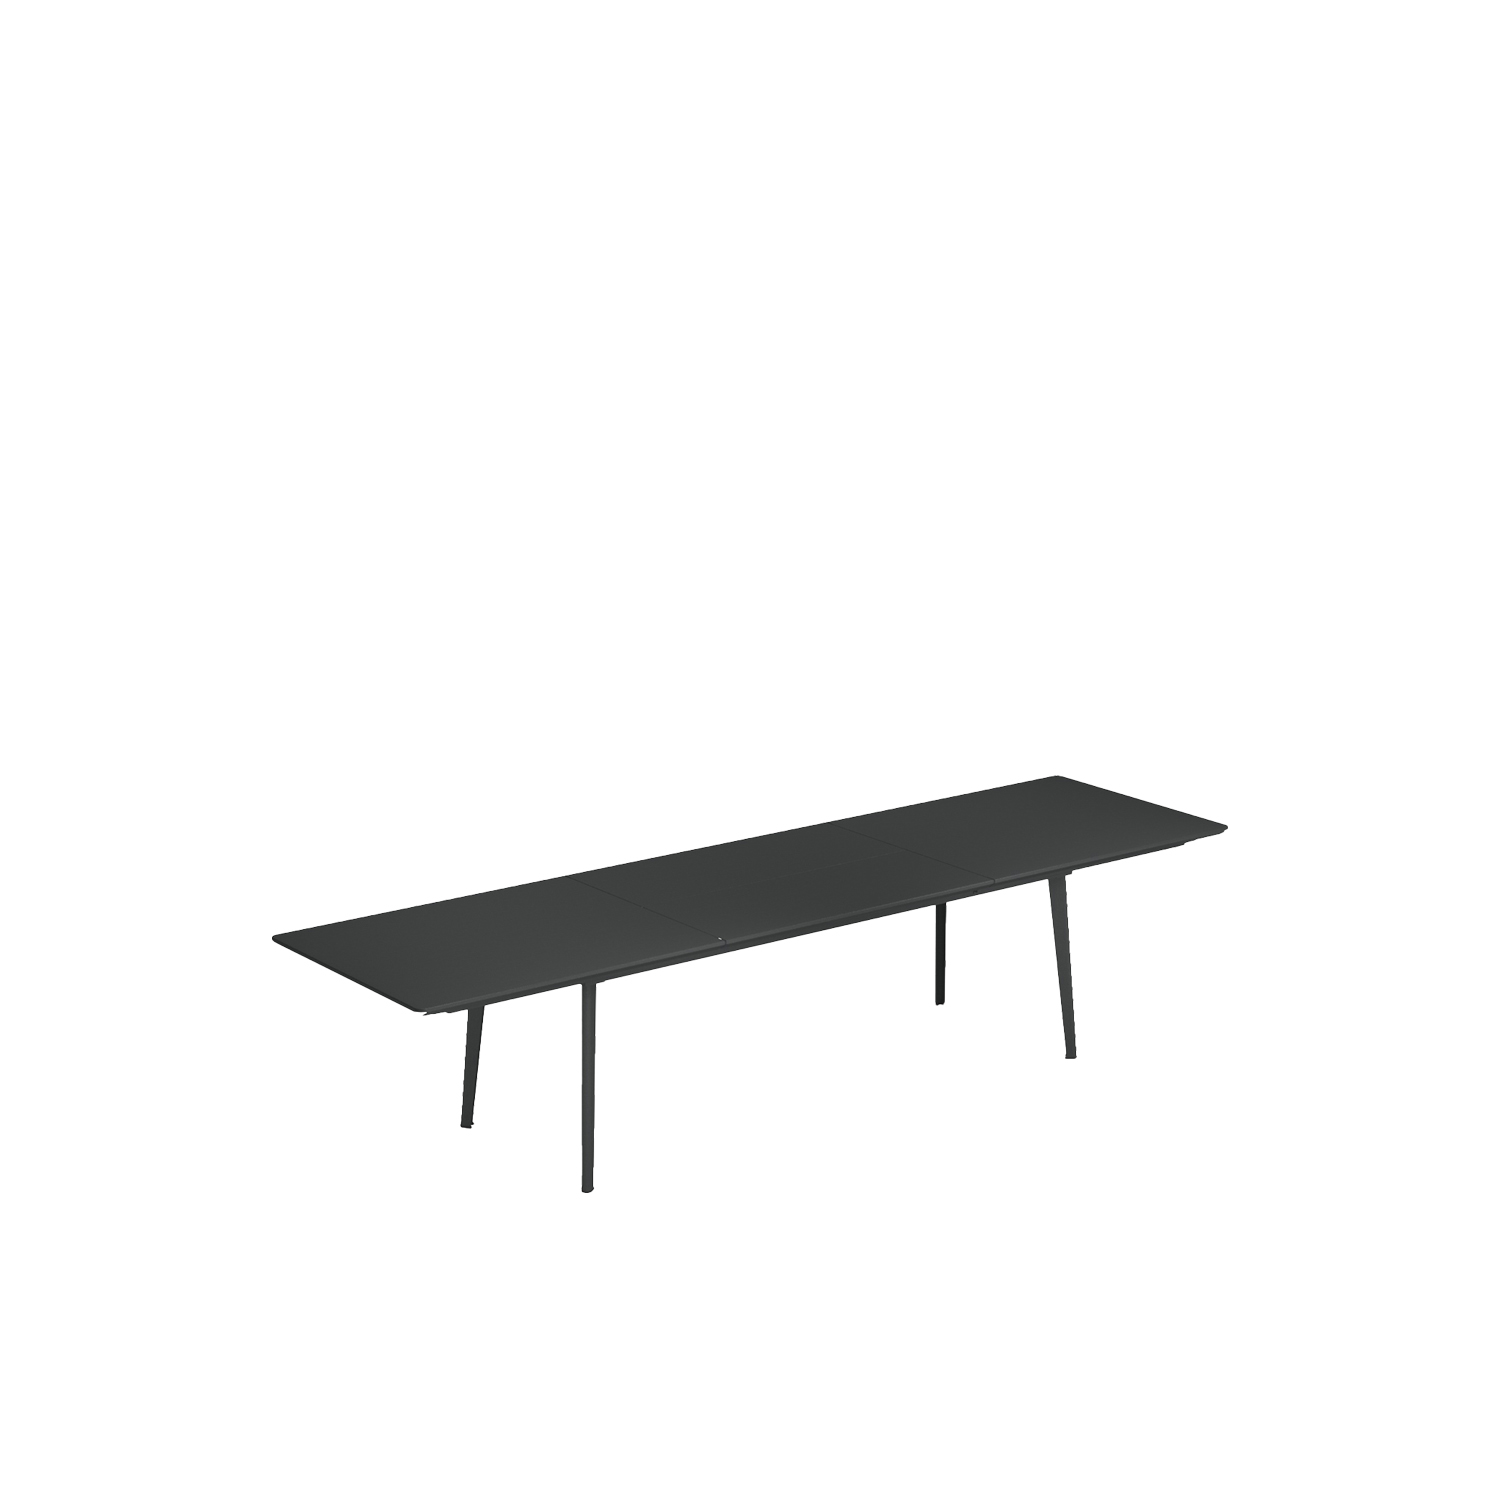 Plus 4 Extensible Table - Plus4 collection is made up of extendible tables: one with sizes 160+110x 90 cm and another one with sizes 220+110x90 cm. The surface is made of press-formed steel, with careful work to the finishes for a better aesthetic effect. Used to allow extensibility of the surface, the rails are specifically designed by EMU for this line. The butterfly opening mechanism of the inner extension makes it easier to open these tables. Comparing to a traditional extendible table, the 110 cm extension allows adding 4 seats instead of 2, increasing the possibility of use for this product. Furthermore, the extension of the table is designed in a way that all the seats fit easily without any impediment. There are two designs available for the legs: round and conical.